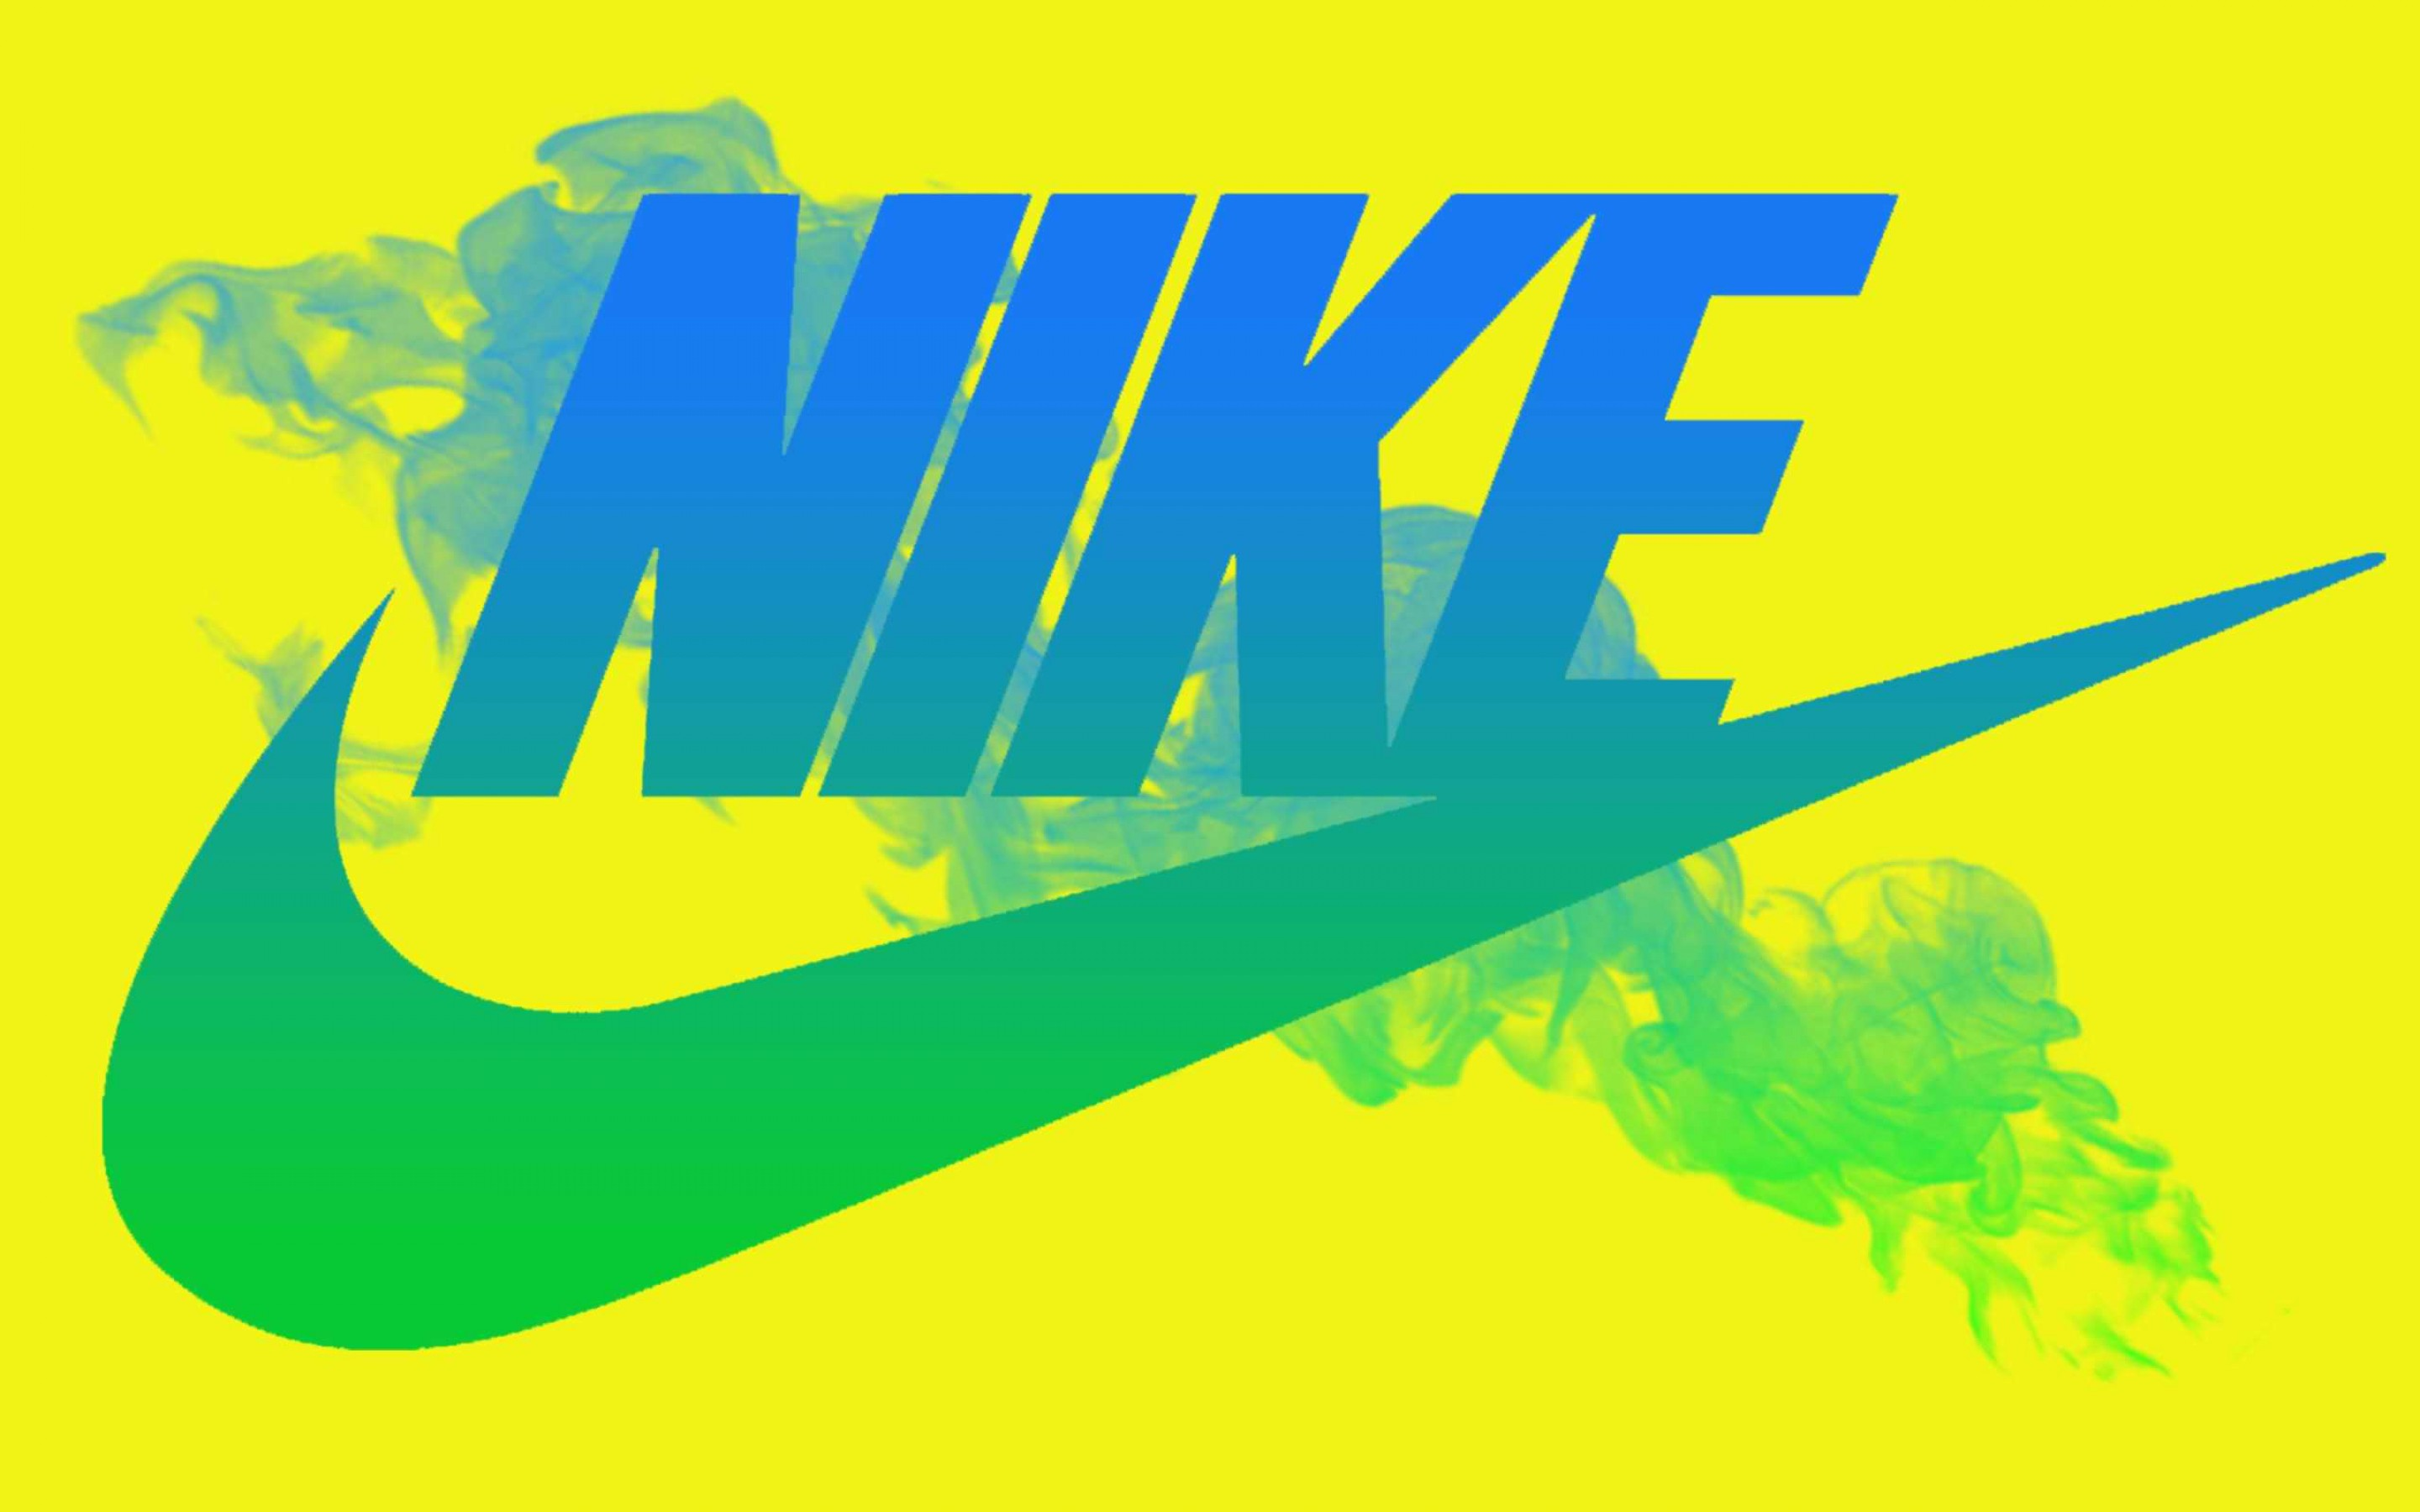 Blue Nike Logo Yellow Background Wallpaper Ful 6924 Wallpaper High 2880x1800